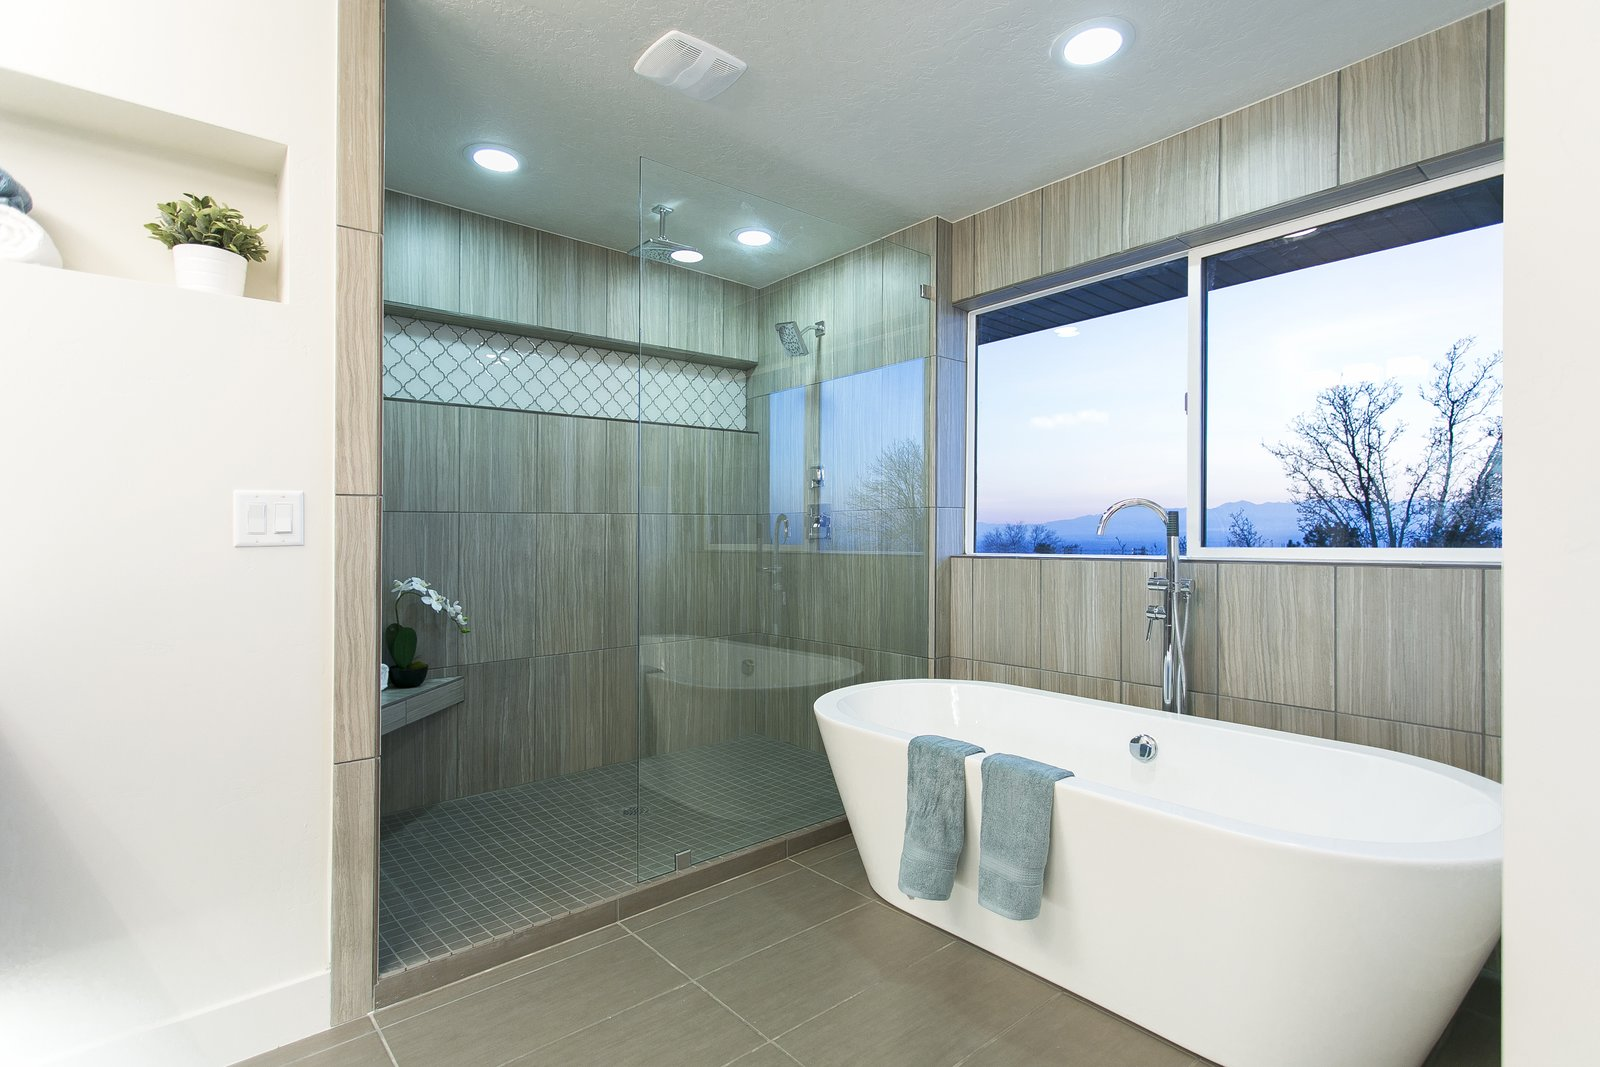 The master bathroom has been fully reworked to capitalize on the sweeping views that can be seen not just from the master bedroom but out the window perched directly above the soaking tub.  King of the Wasatch